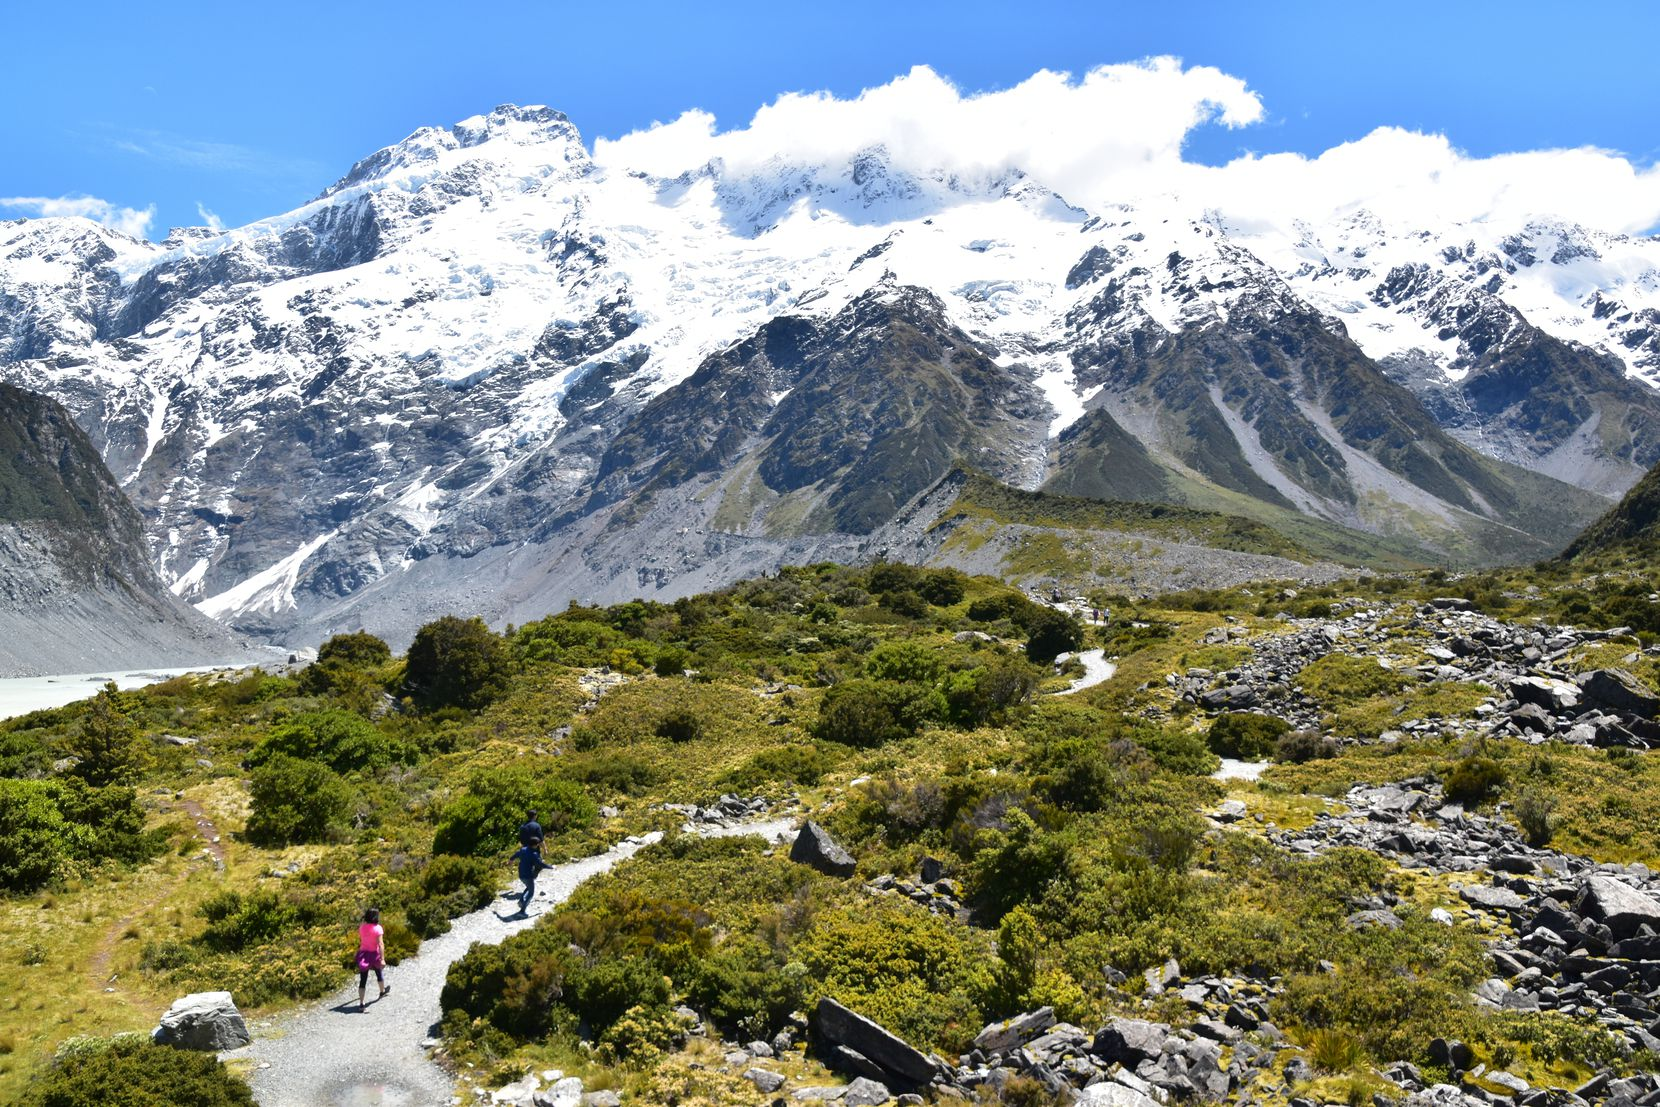 A trail leads to the base of the Hooker Glacier at the bottom of Mount Cook, New Zealand's tallest mountain.